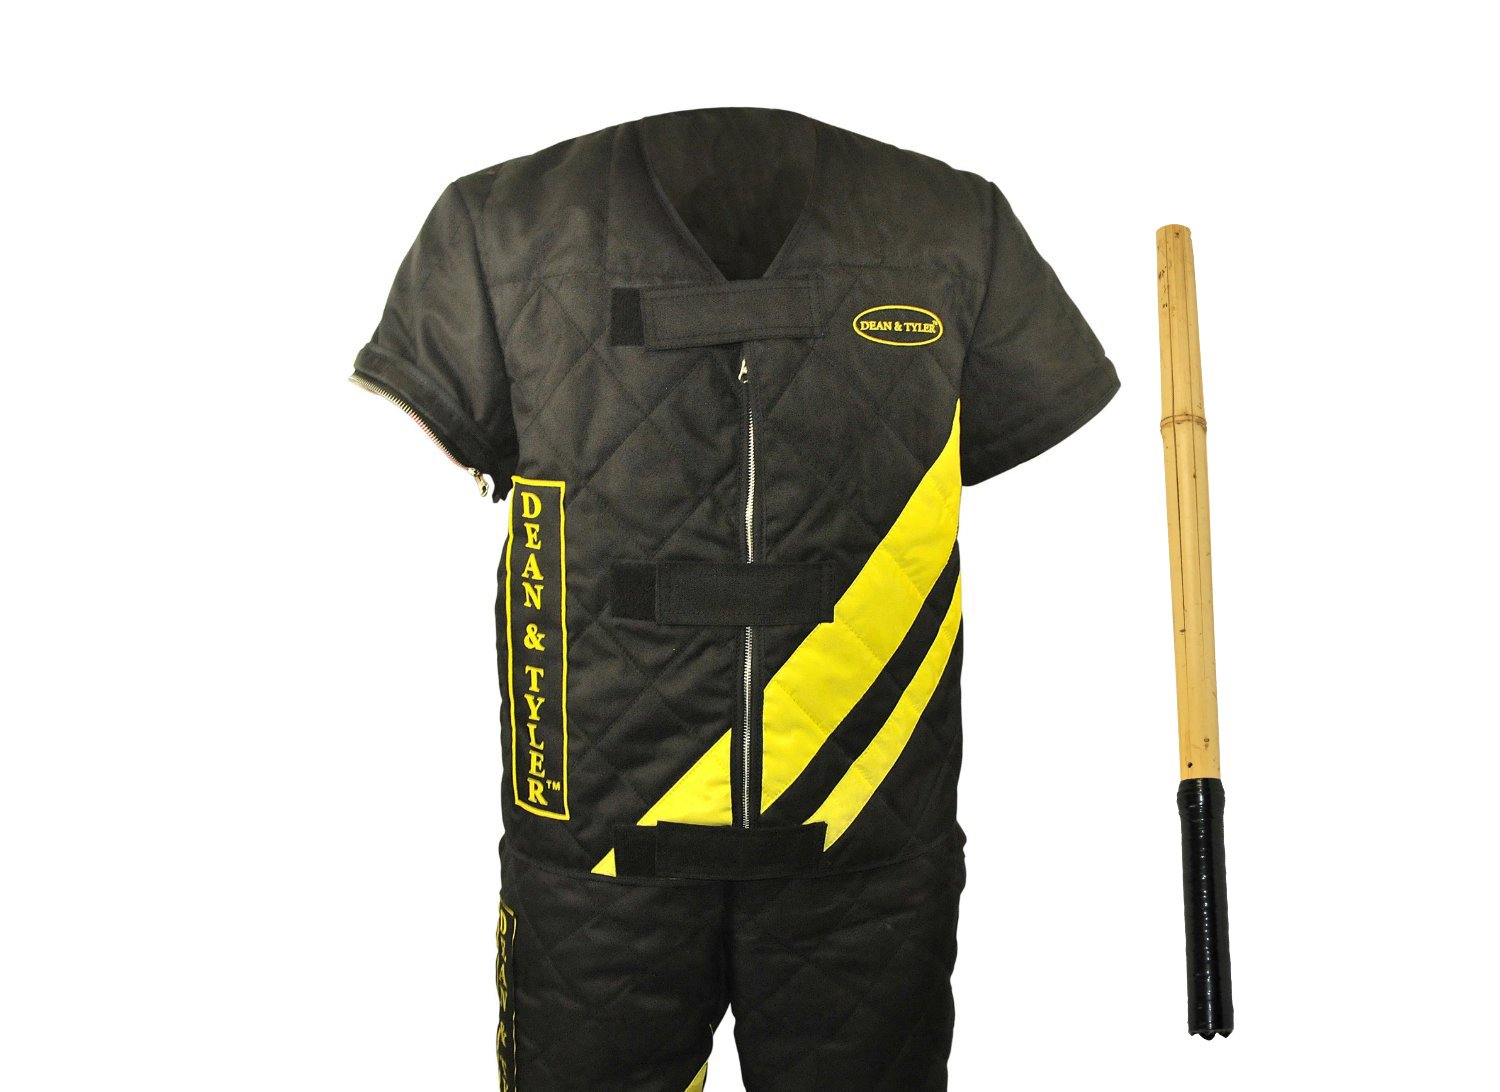 Dean & Tyler 2-Piece Pro Bundle Set, Includes XX-Large Scratch Jacket Agitation Stick for Training Fully Grown Dogs